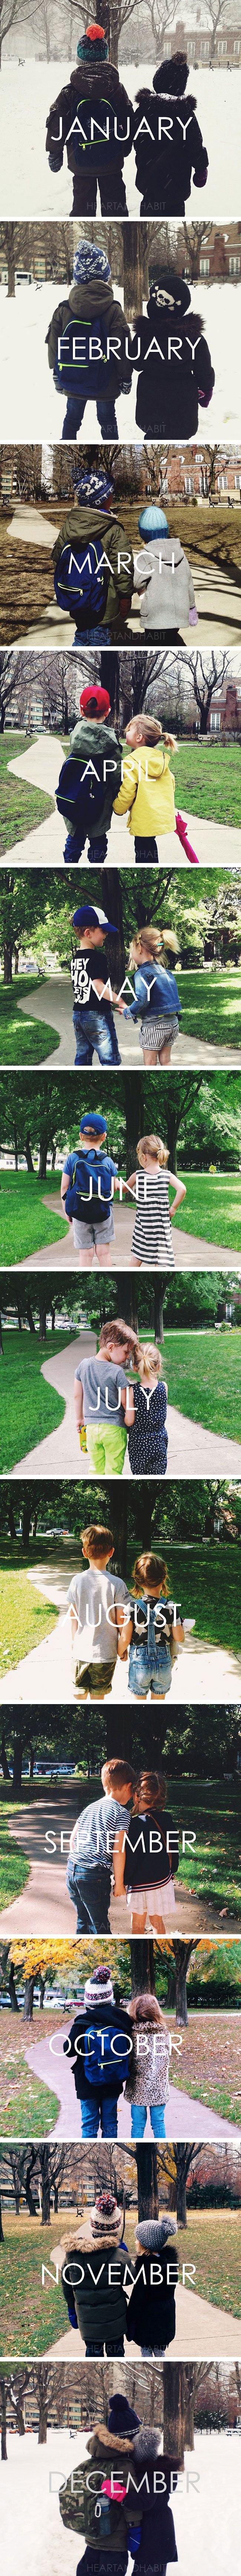 Take a picture in the same spot every month and then make a calendar out of it!